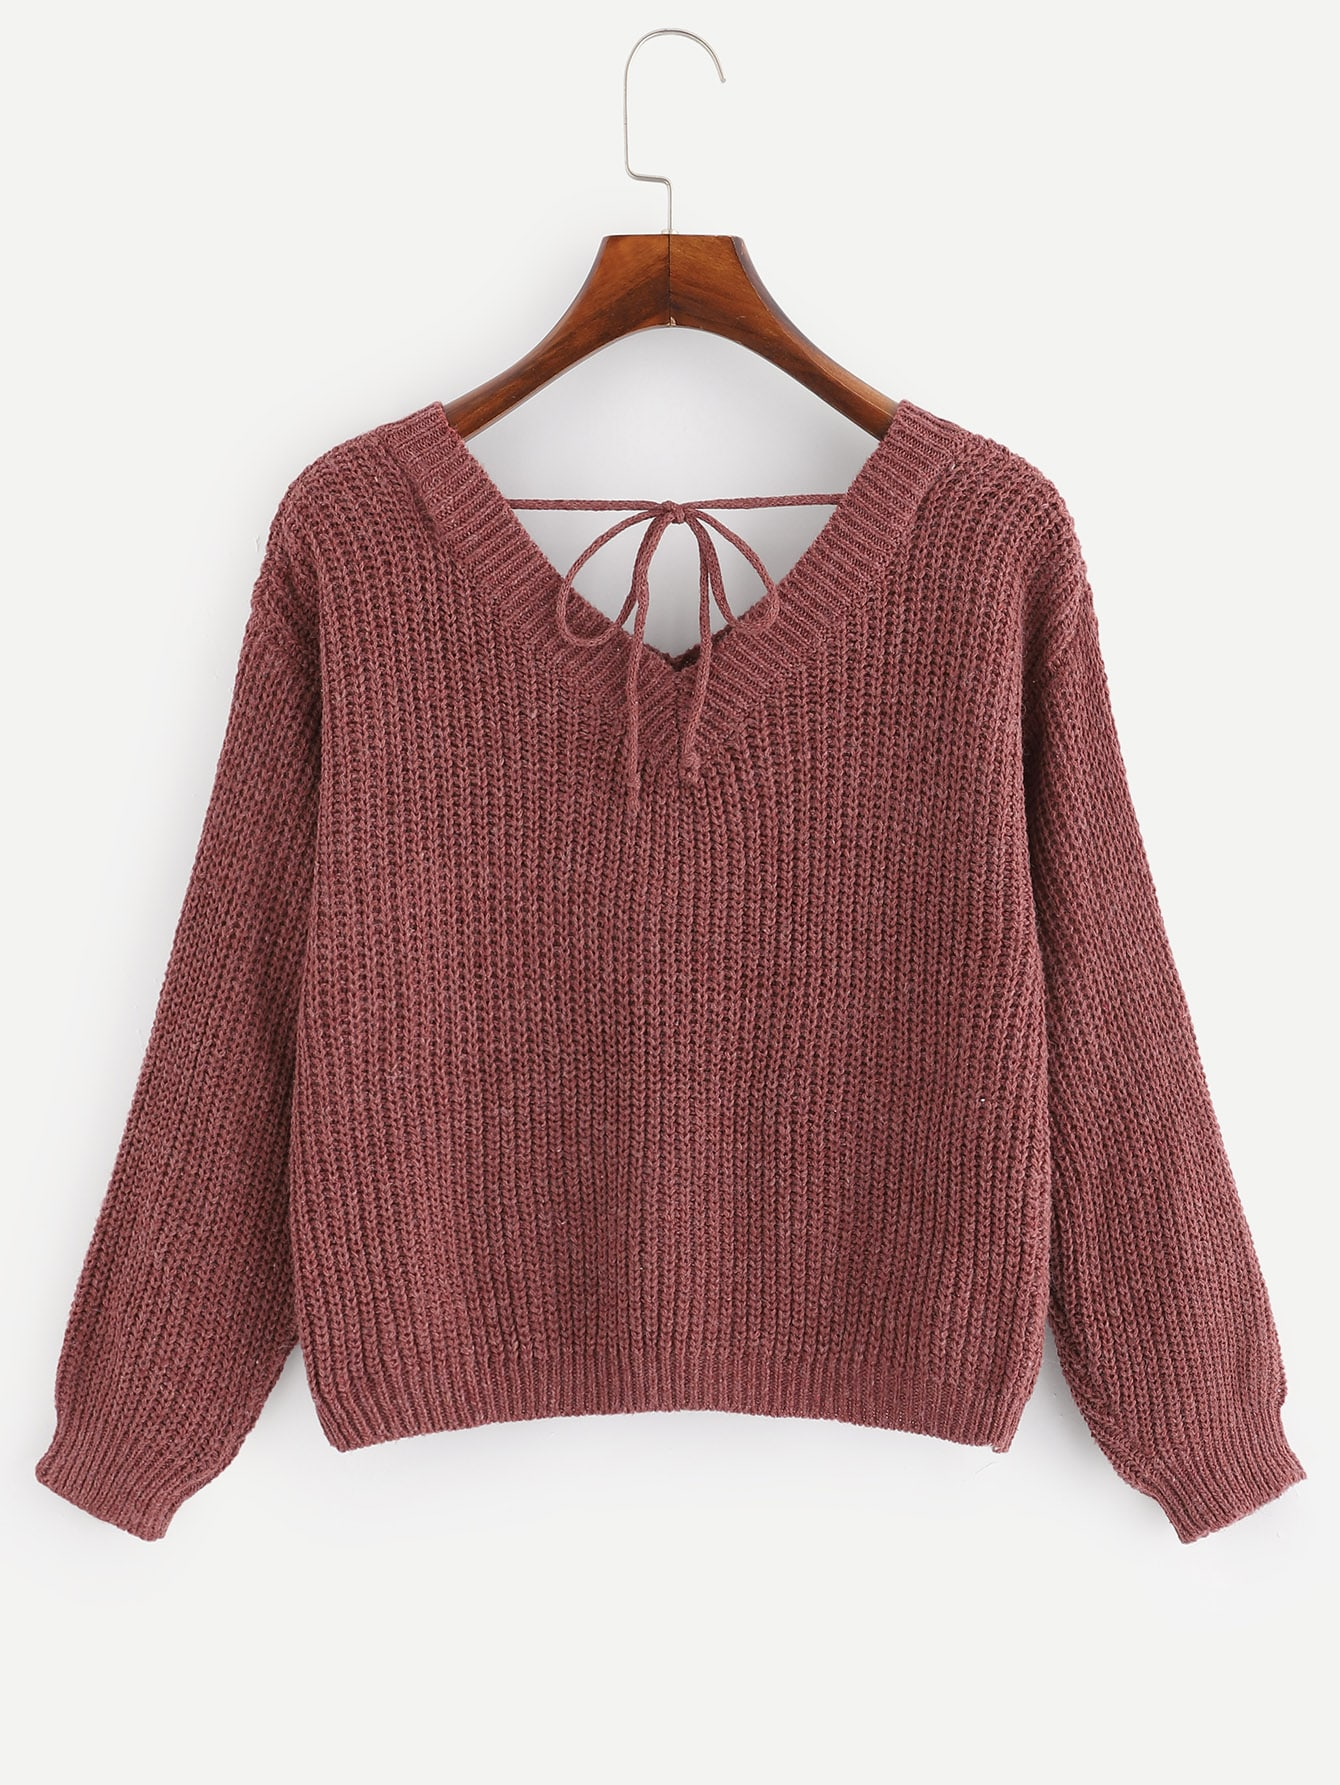 V Neck Knot Detail Sweater by Romwe